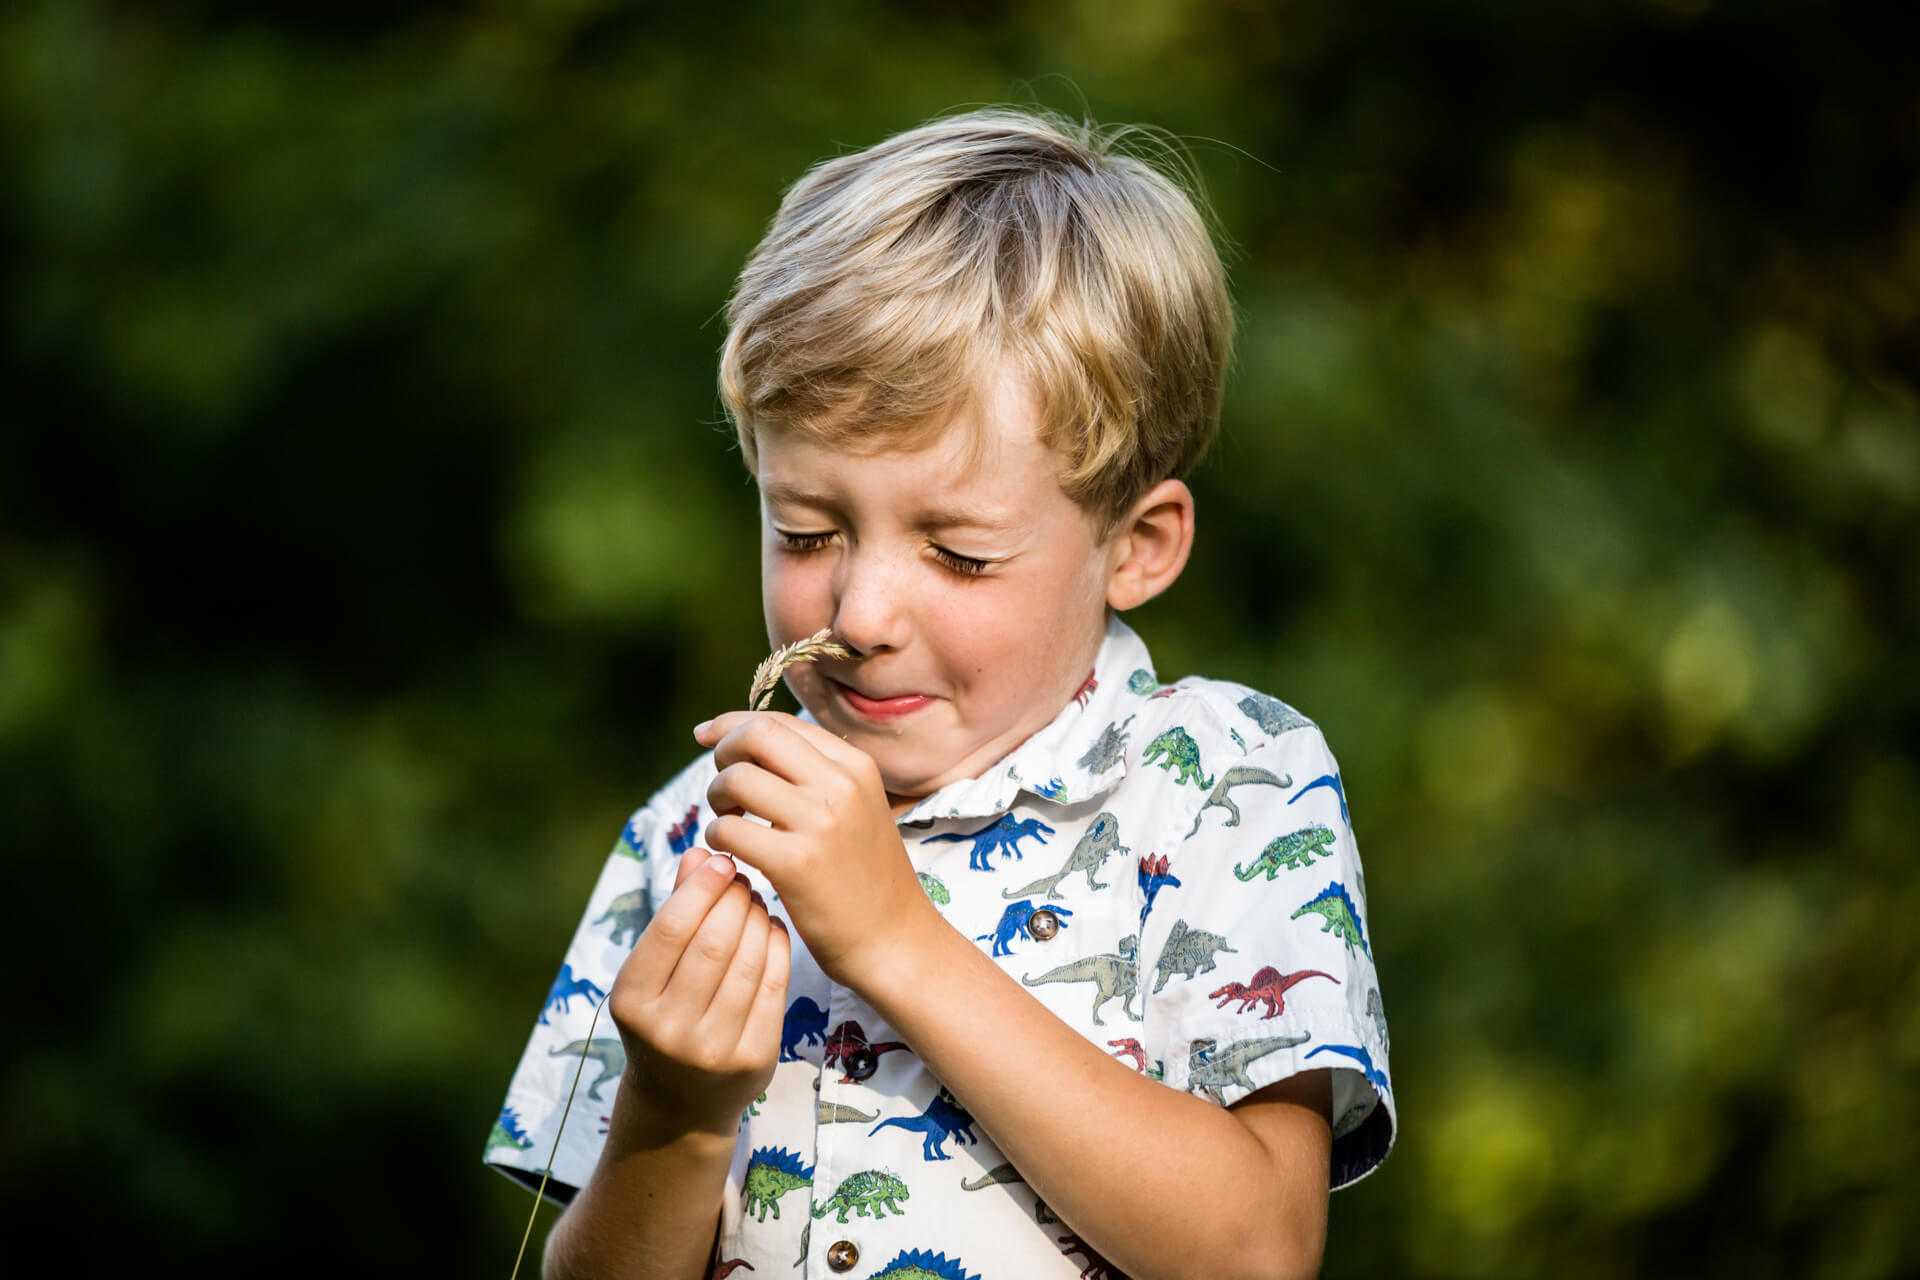 small boy smelling a piece of grass